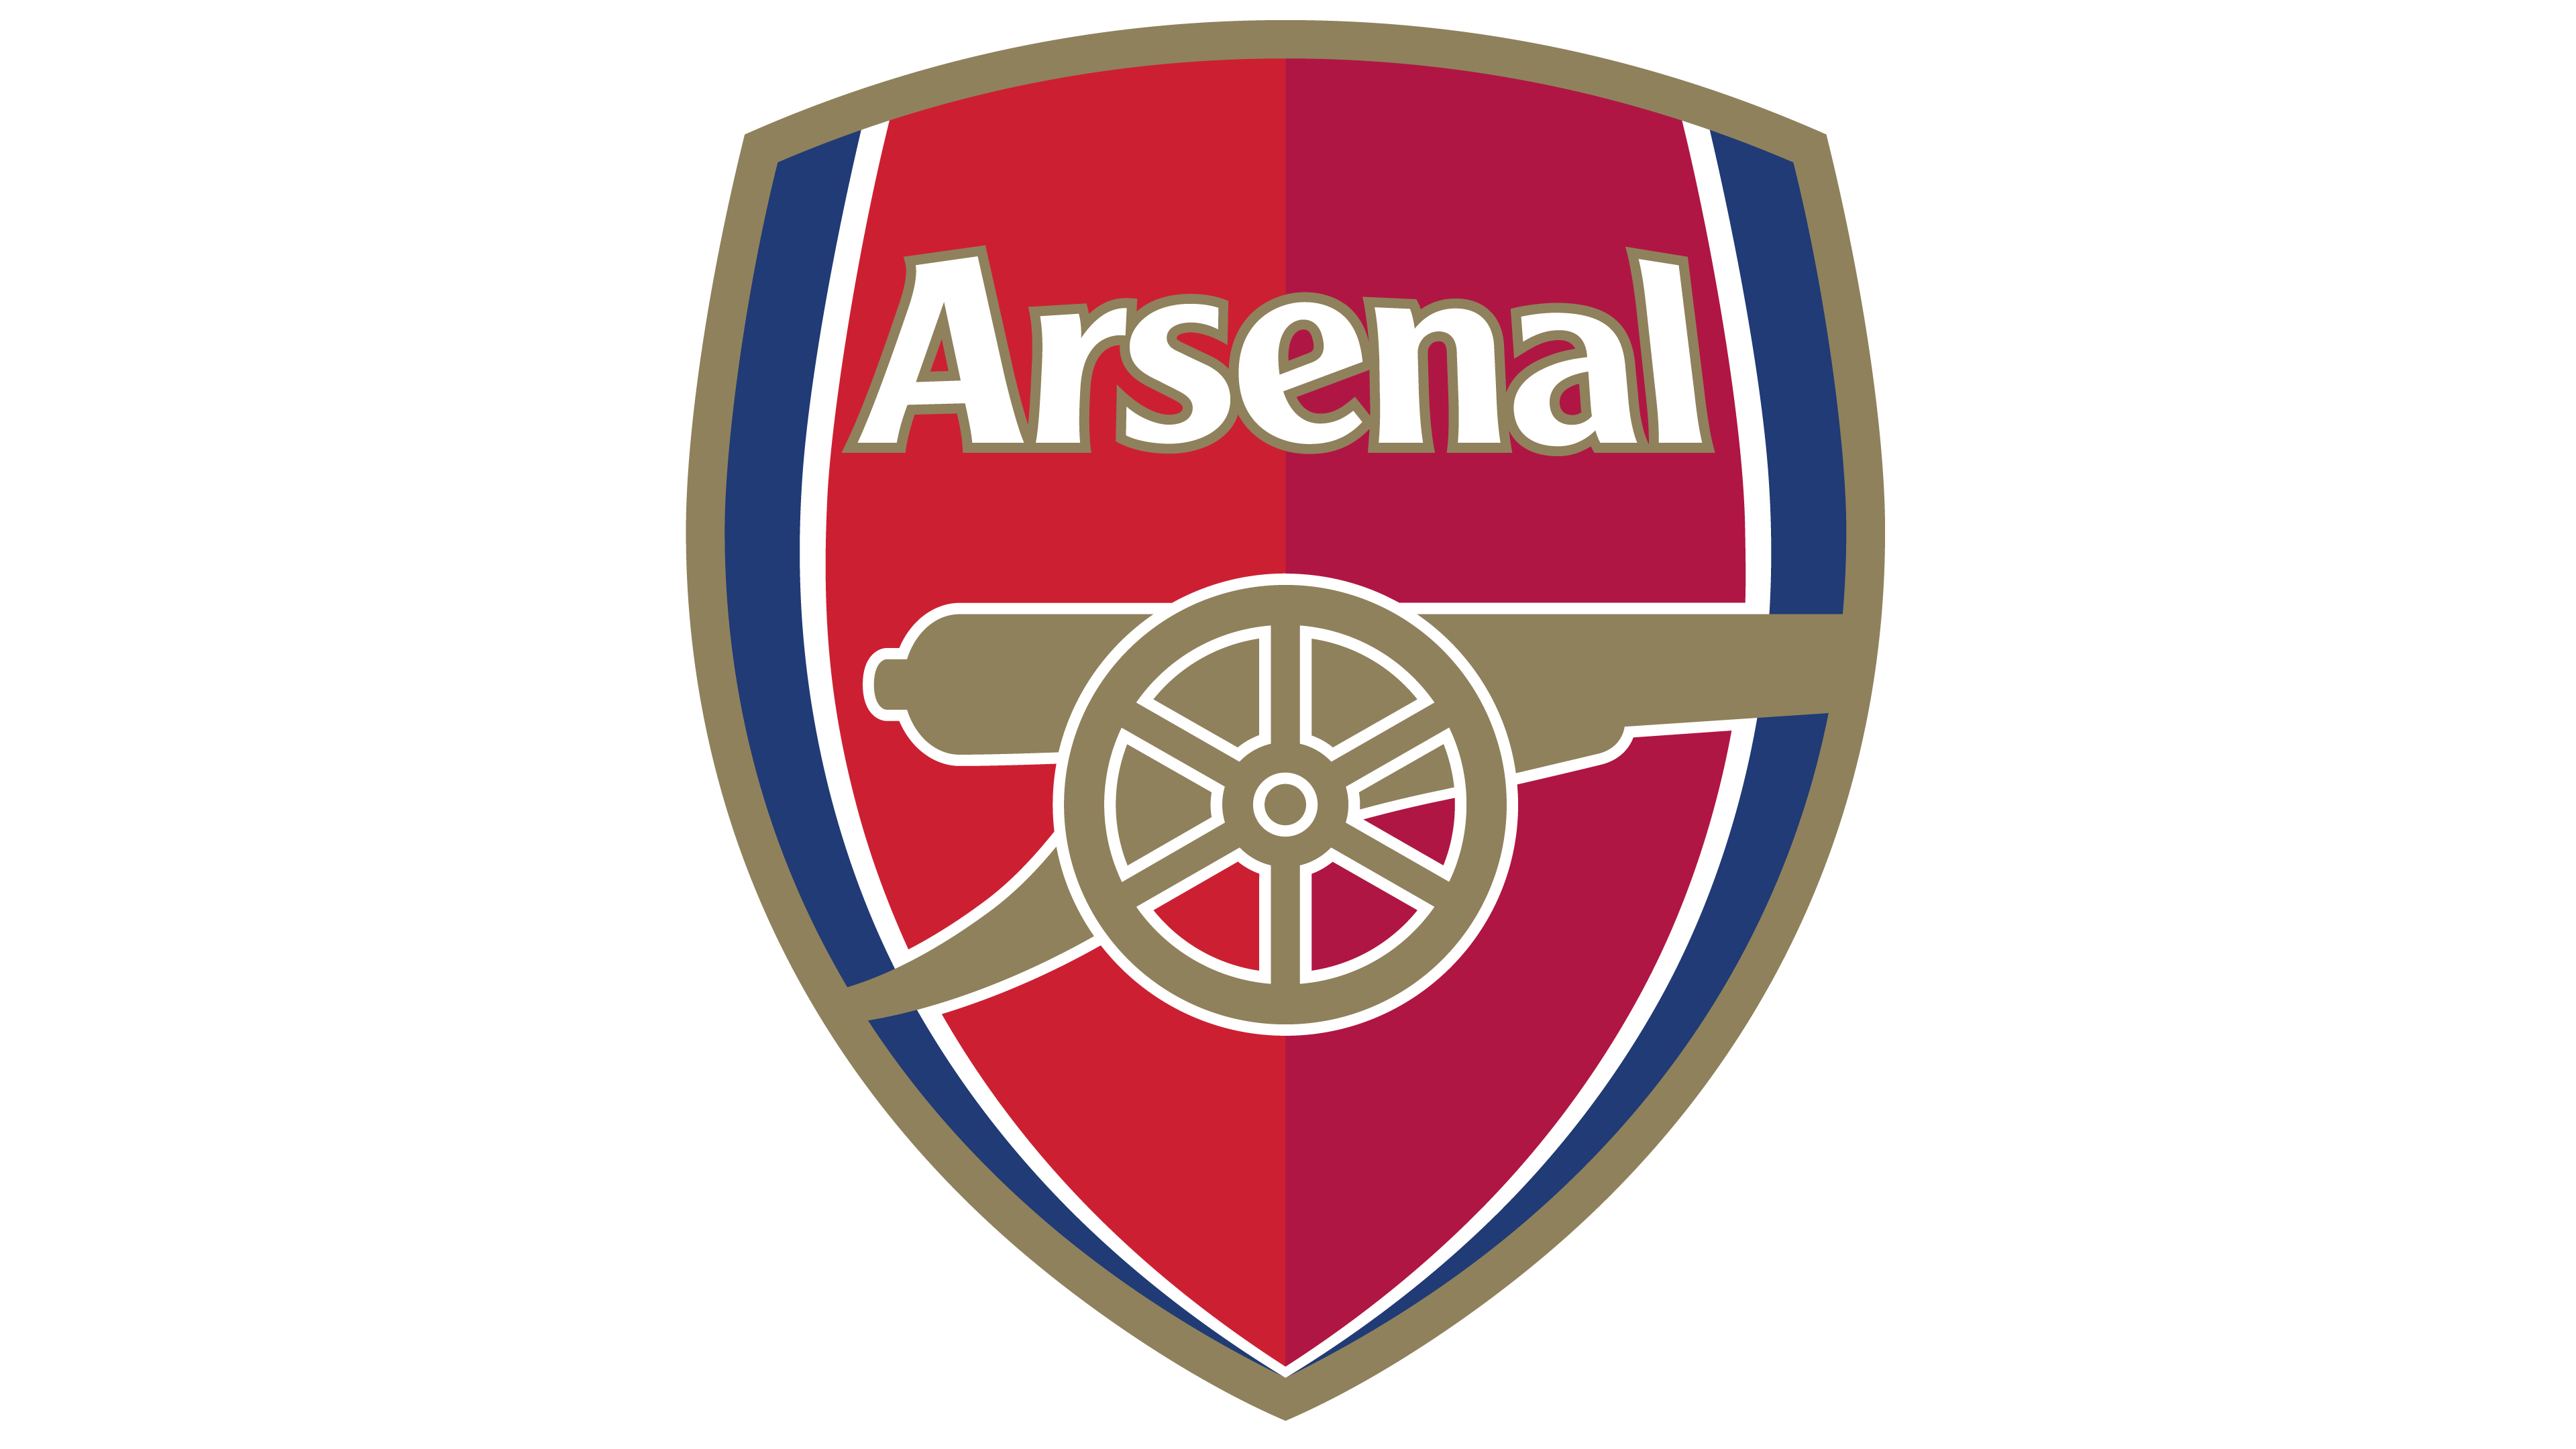 Arsenal logo.